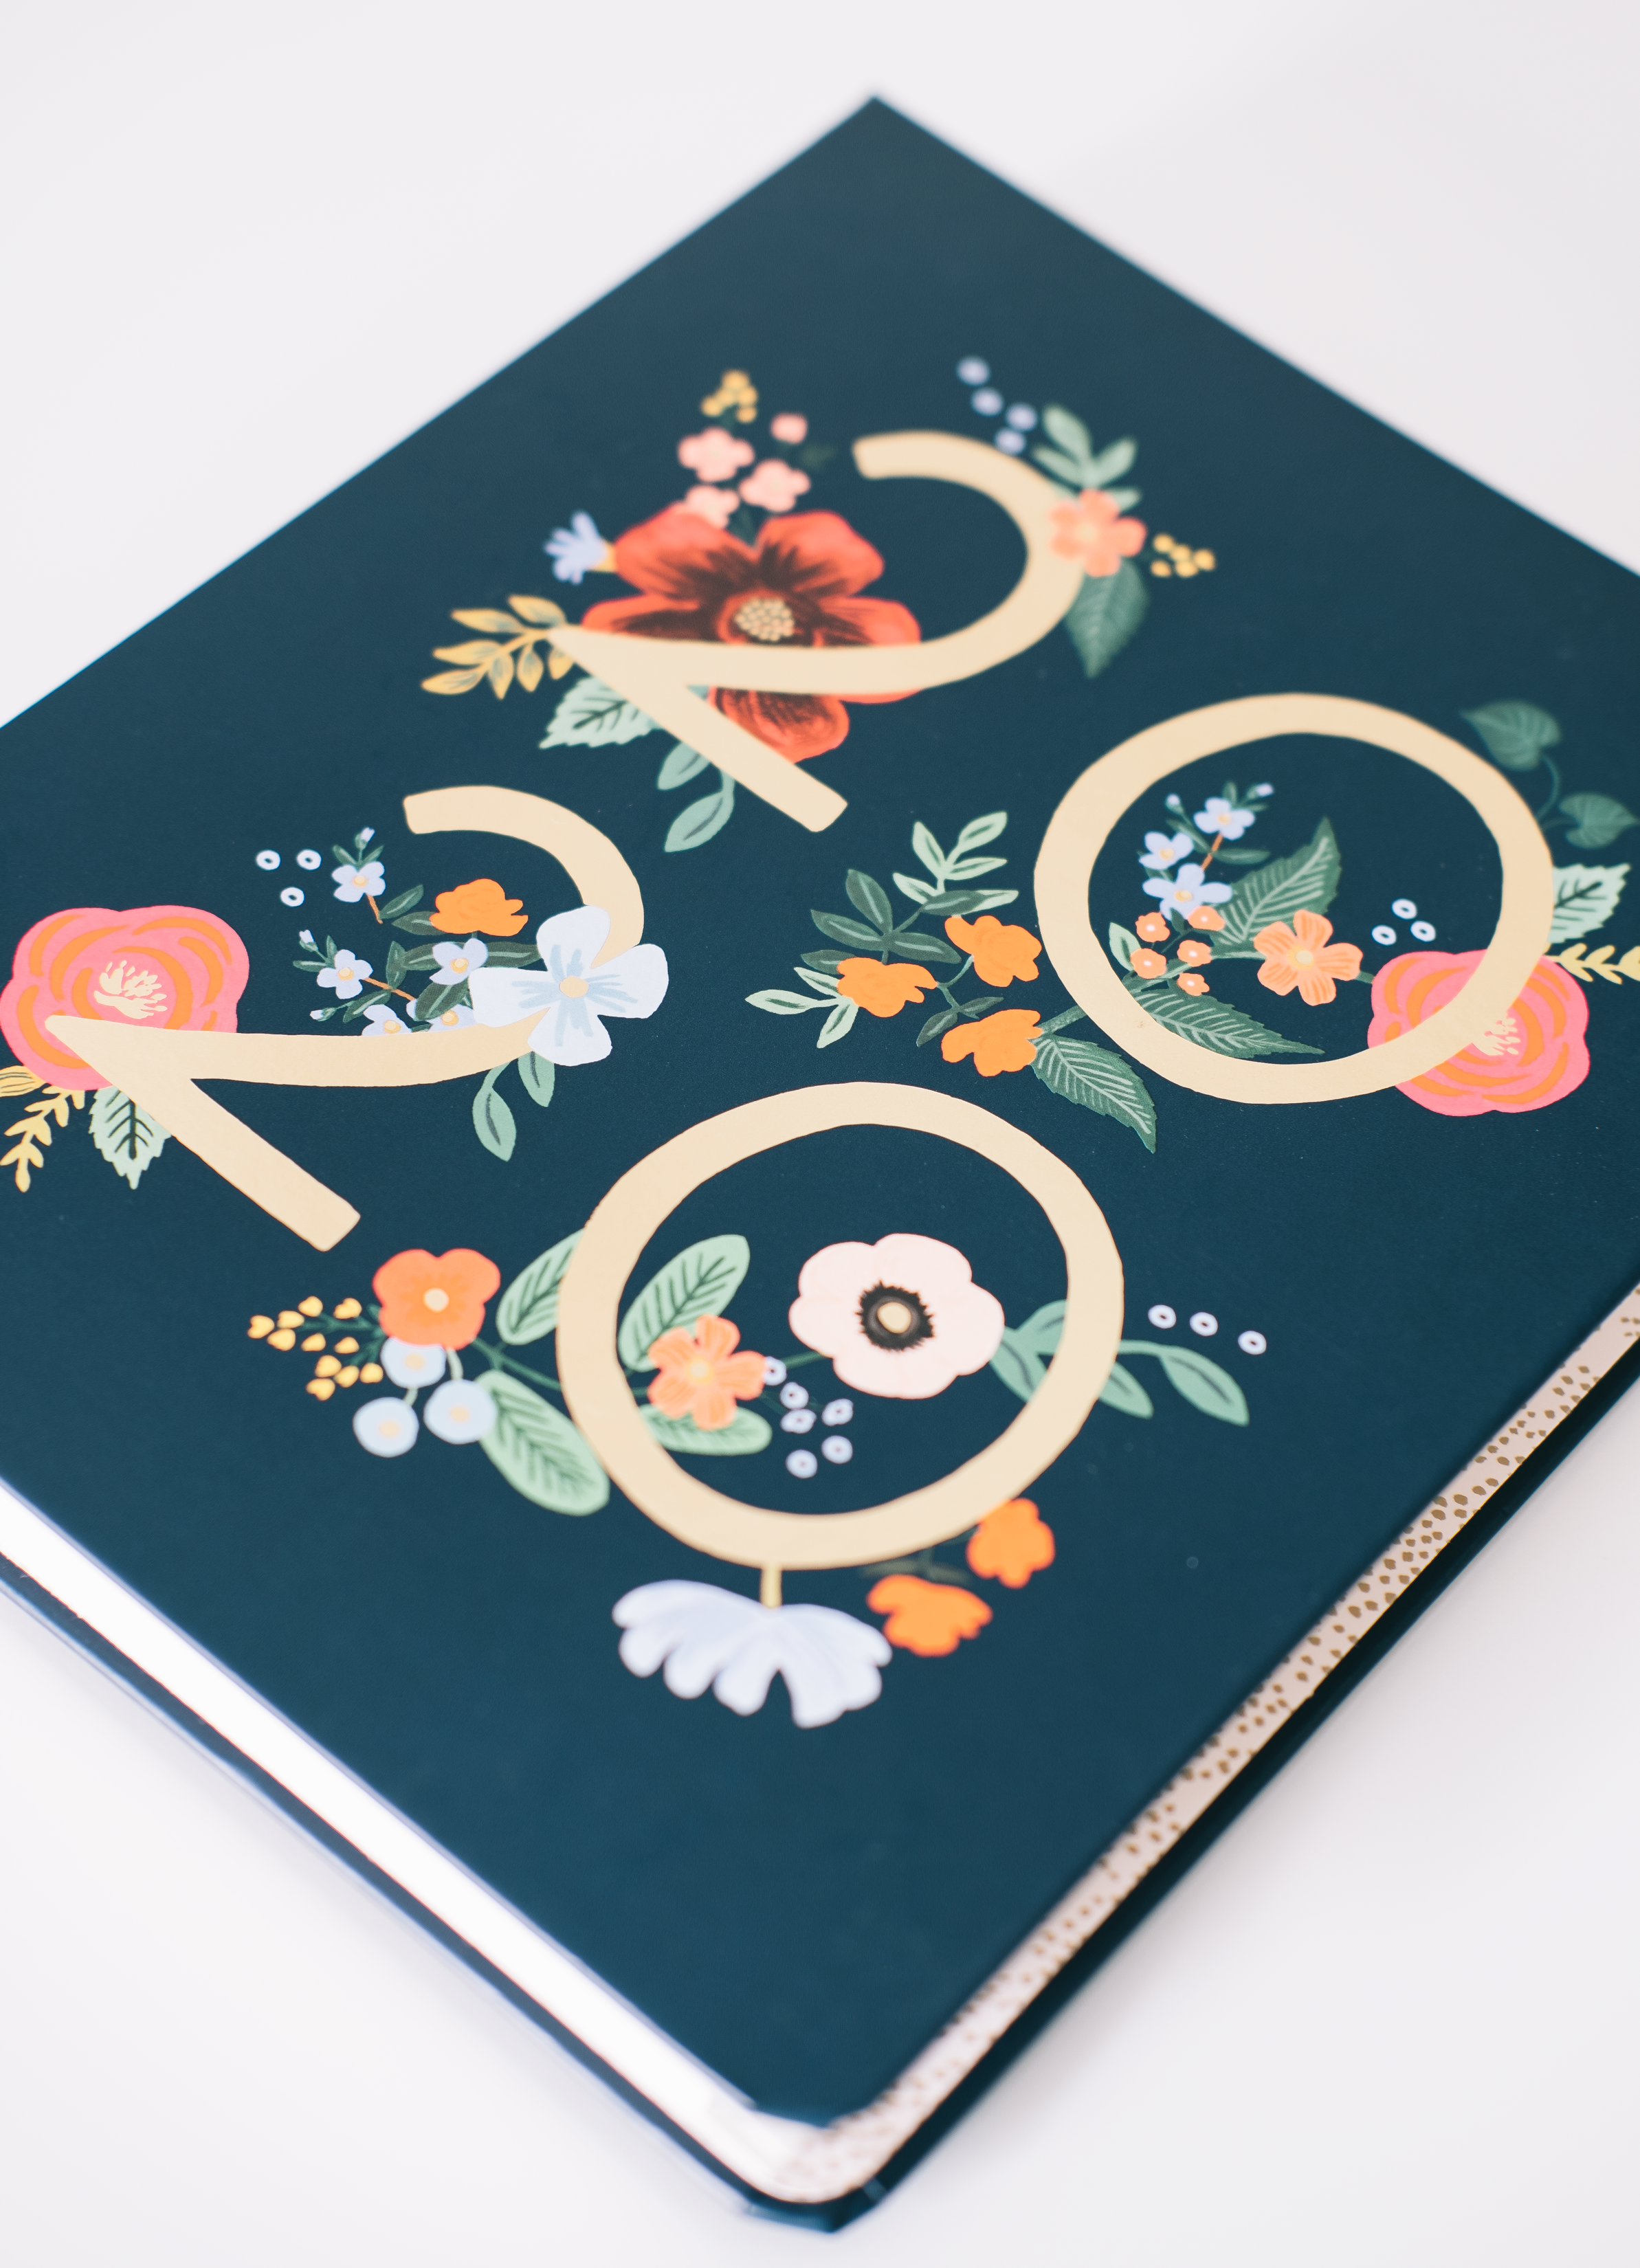 rifle paper co 2020 diary (gifted) - I've always been a yearly diary type of girl for as long as I can remember. You just cannot beat the feeling of sitting down on the first of January and jotting down things for the new year. But this year I've gone for the 18-month diary and I love it, getting that fresh start feeling mid-year when typically that's the time that I'm in a real slump with everything has been so refreshing. Anything Rifle Paper Co makes is dreamy and this diary is no exception, it's got just enough space in to use it to your advantage and properly plan out your days but it doesn't have any completely useless pages which are a bugbear of mine with most planners. And it has the most adorable sticker sheets to use throughout the year too and I'm a sucker for a good sticker selection. As a leftie, I can often find myself struggling with anything ring bound but thankfully it hasn't been an issue when using this as there is nothing worse than being unable to use the right pages properly.